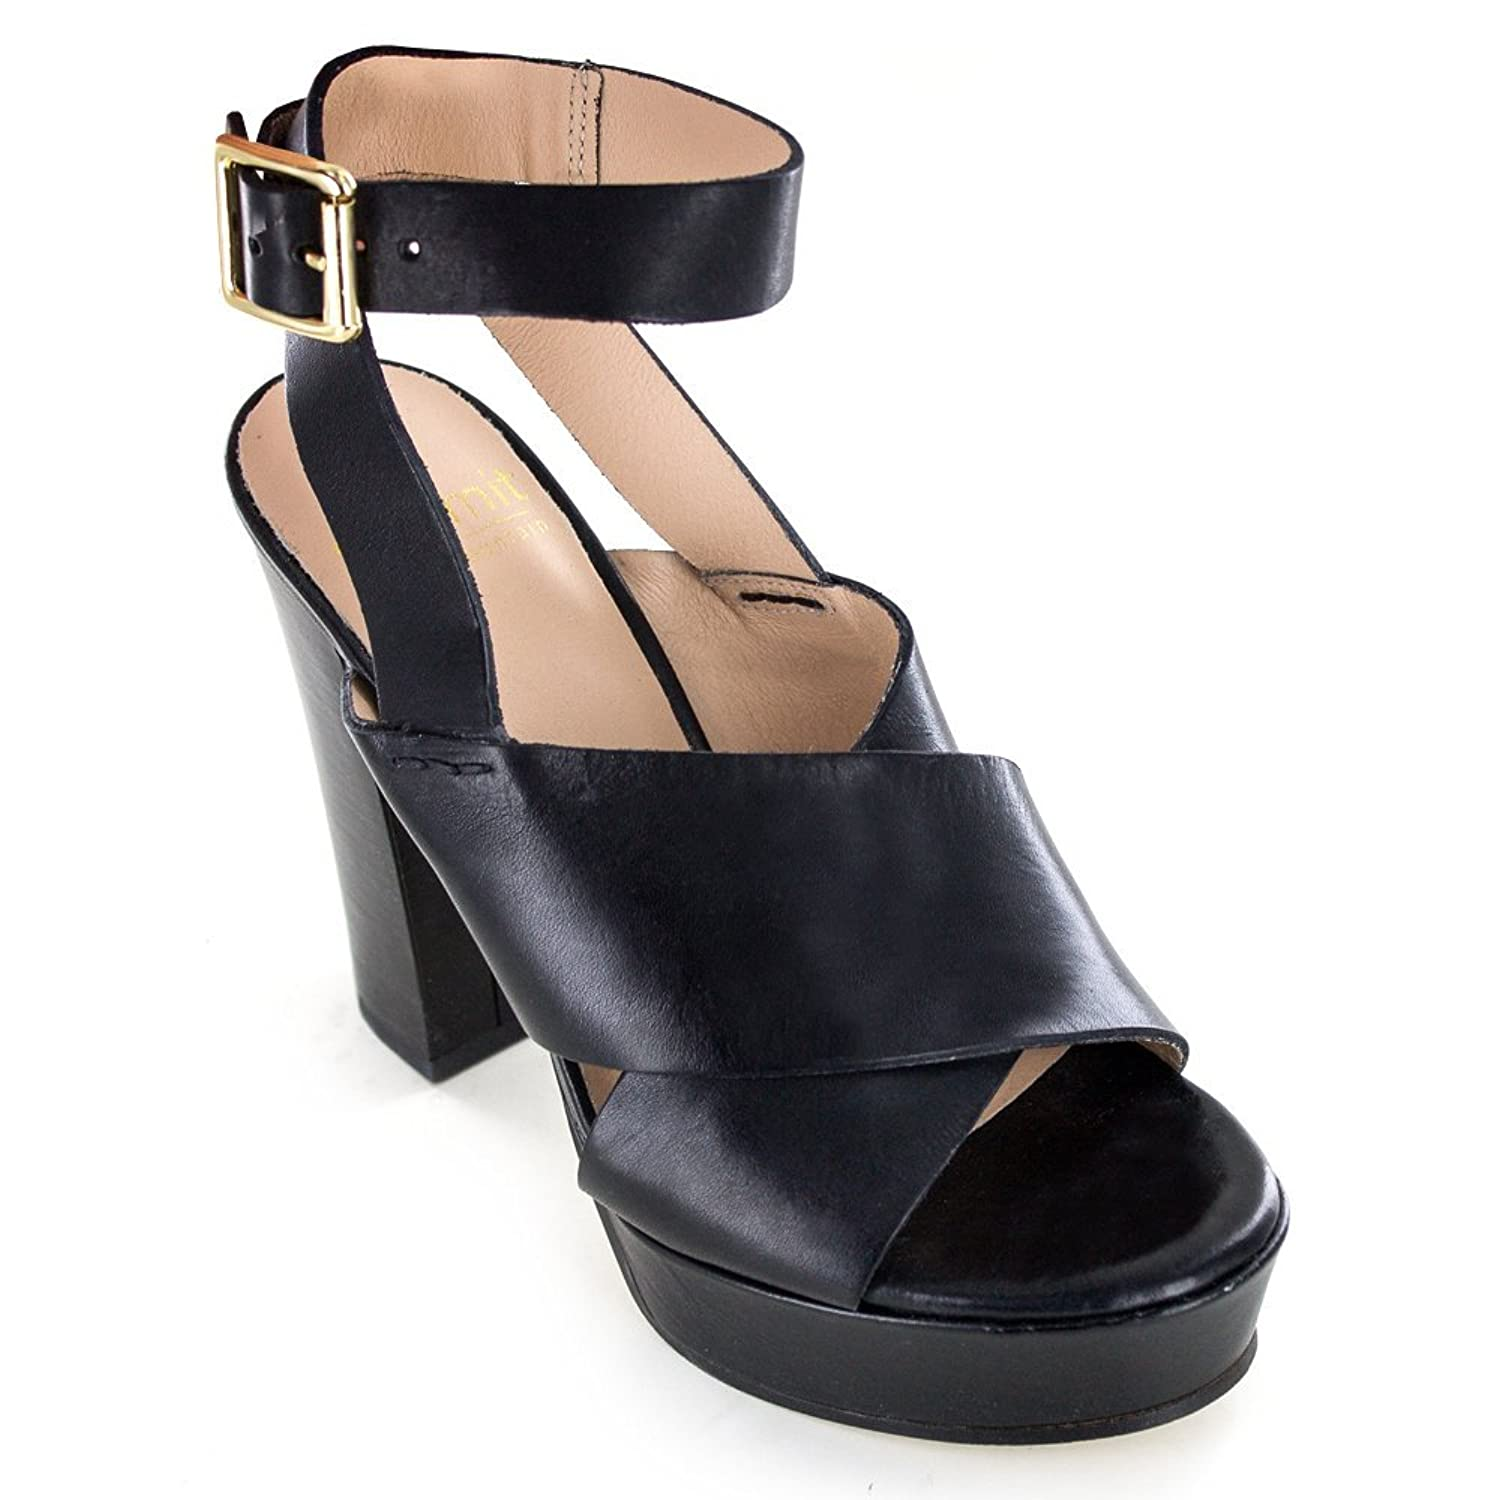 Summit 'VALERA' Women's Heel